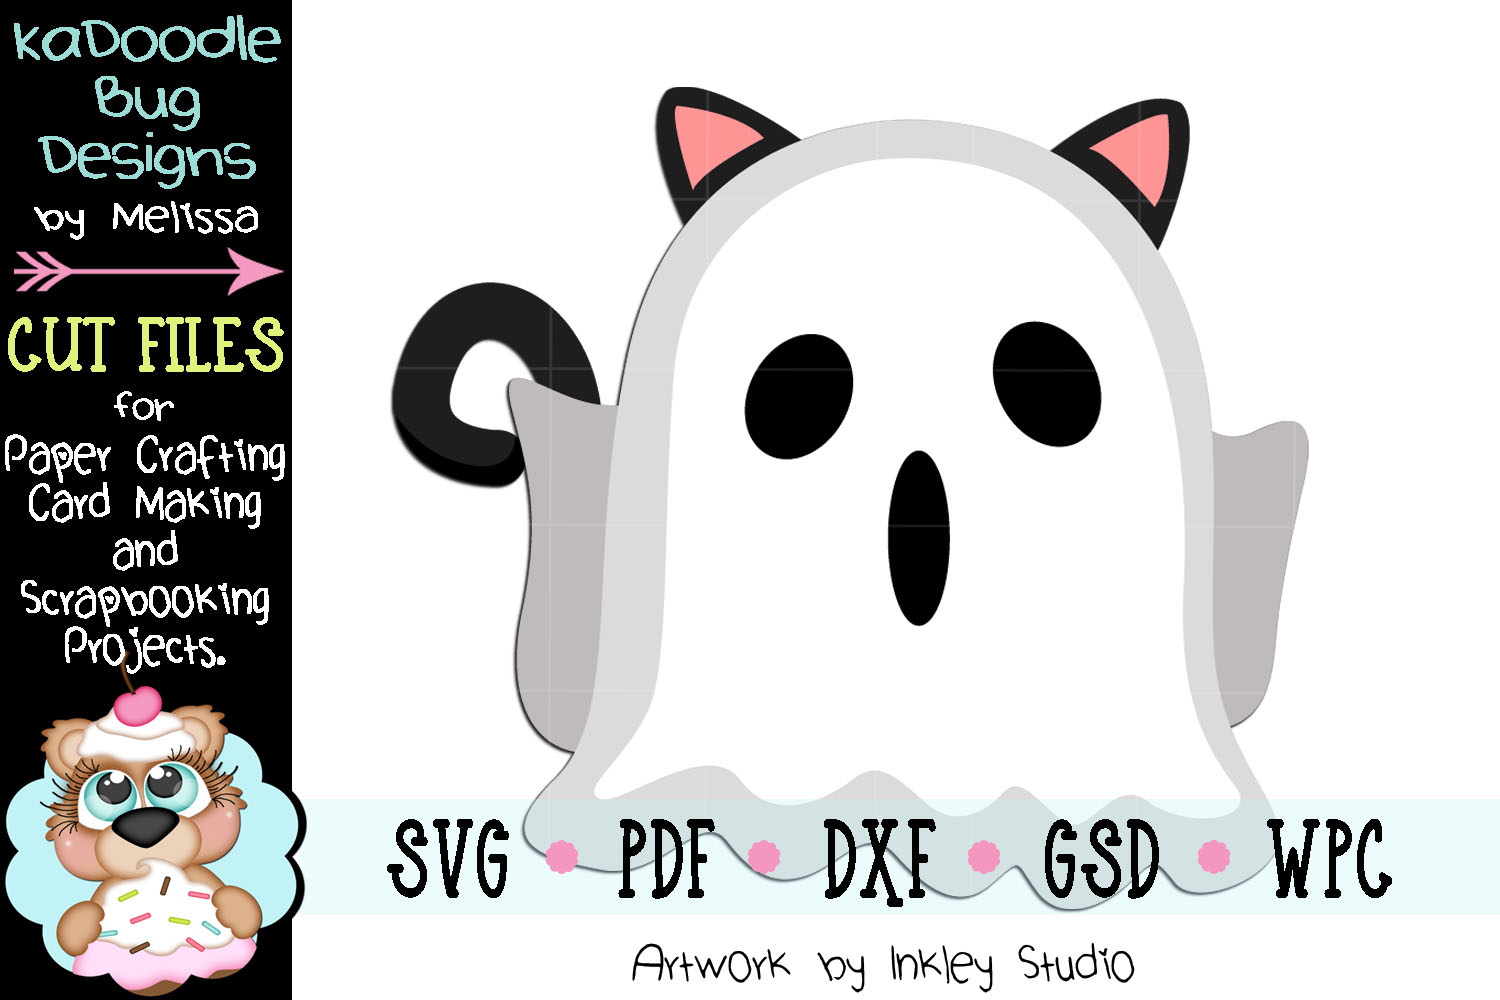 Halloween Ghost Cat Cut File - SVG PDF DXF GSD WPC example image 1